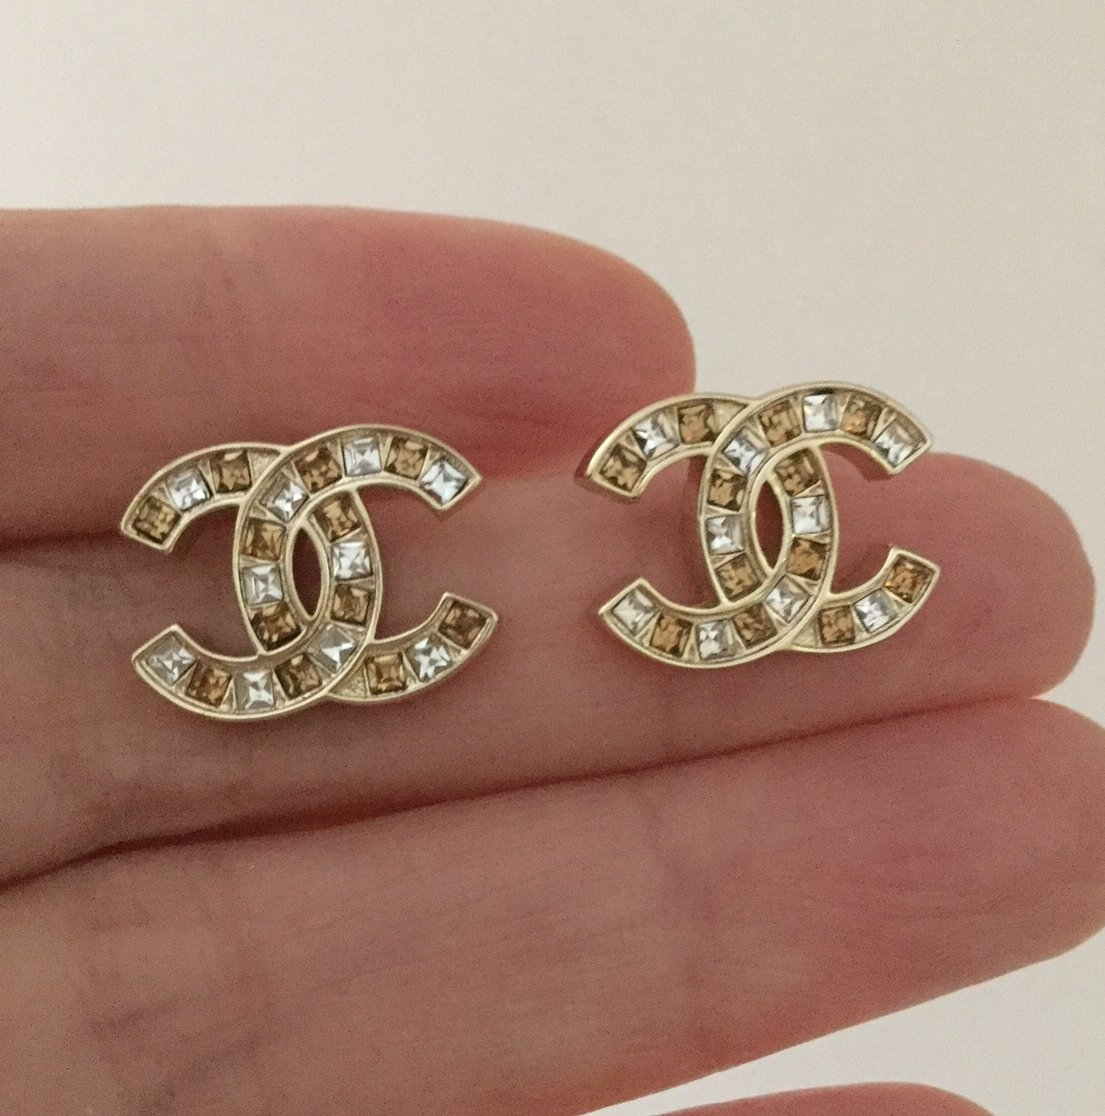 CHANEL CC Gold Stud Earrings Pale Orange Square Crystal Authentic NIB